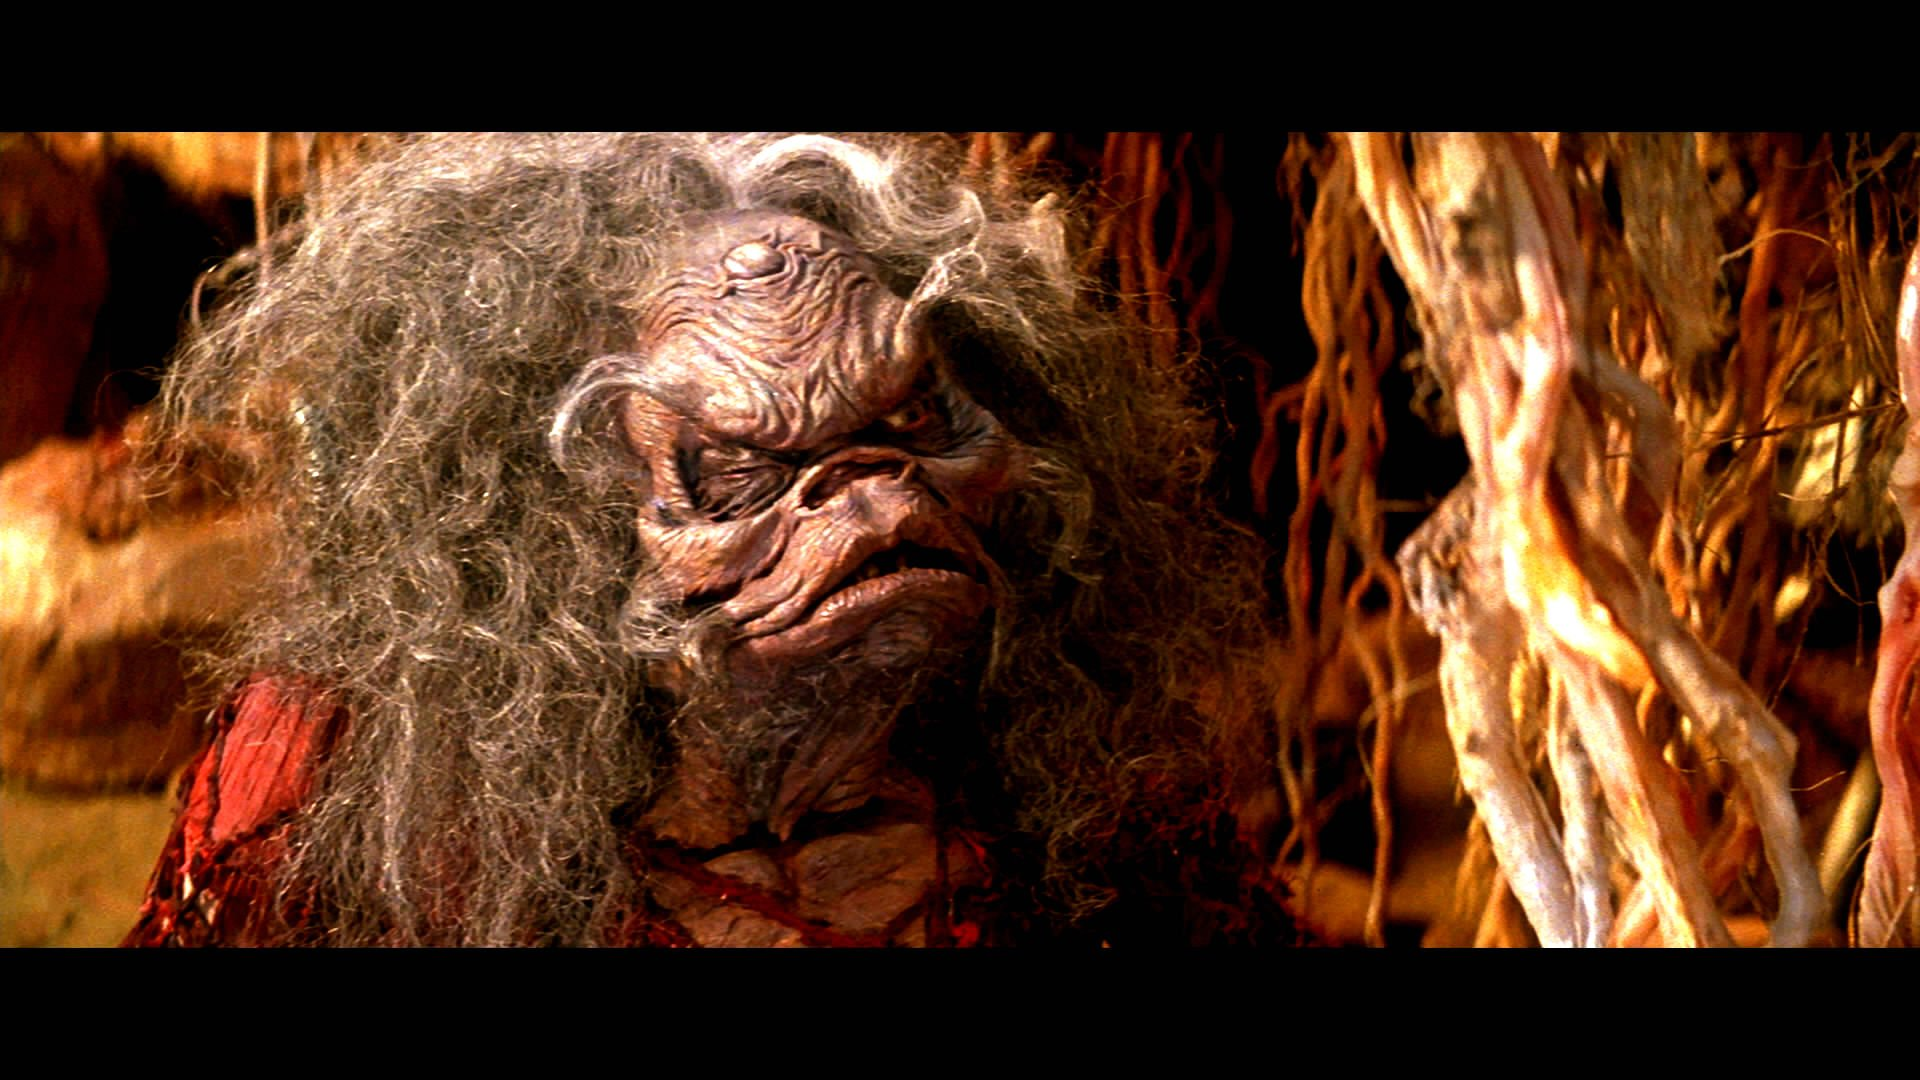 the dark crystal film analysis For those unfamiliar, the dark crystal is a dark children's fantasy film that is considered a masterpiece by many for its masterful use of puppetry, brian froud's distinctive concept art, and.